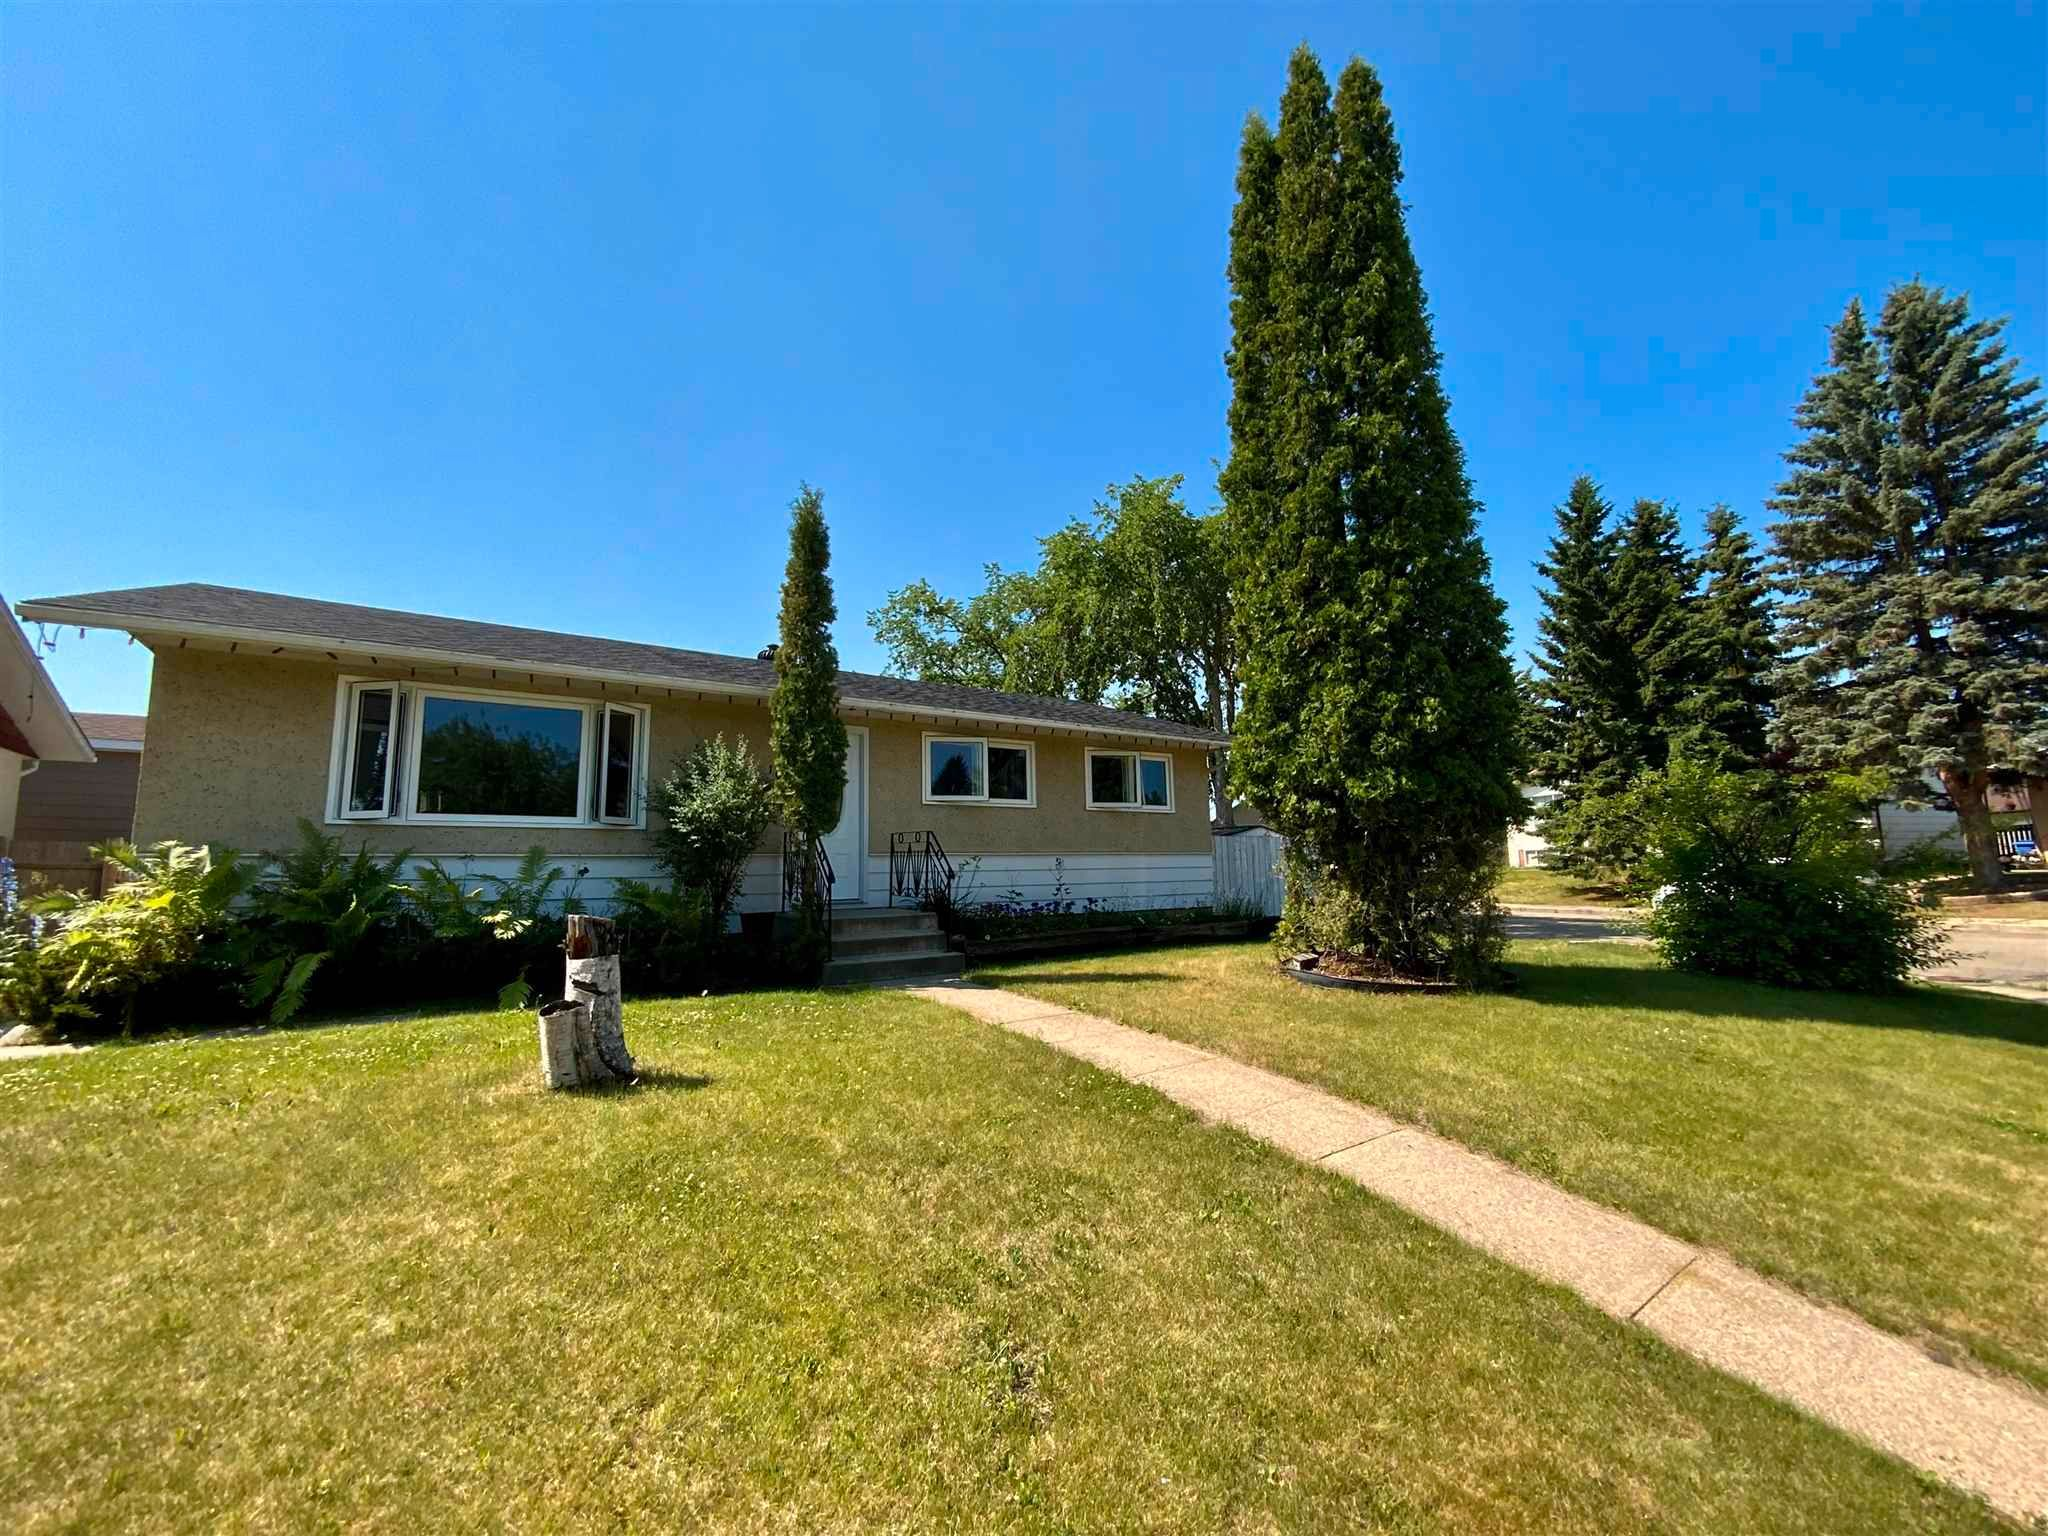 Main Photo: 101 Mayday Crescent: Wetaskiwin House for sale : MLS®# E4253724